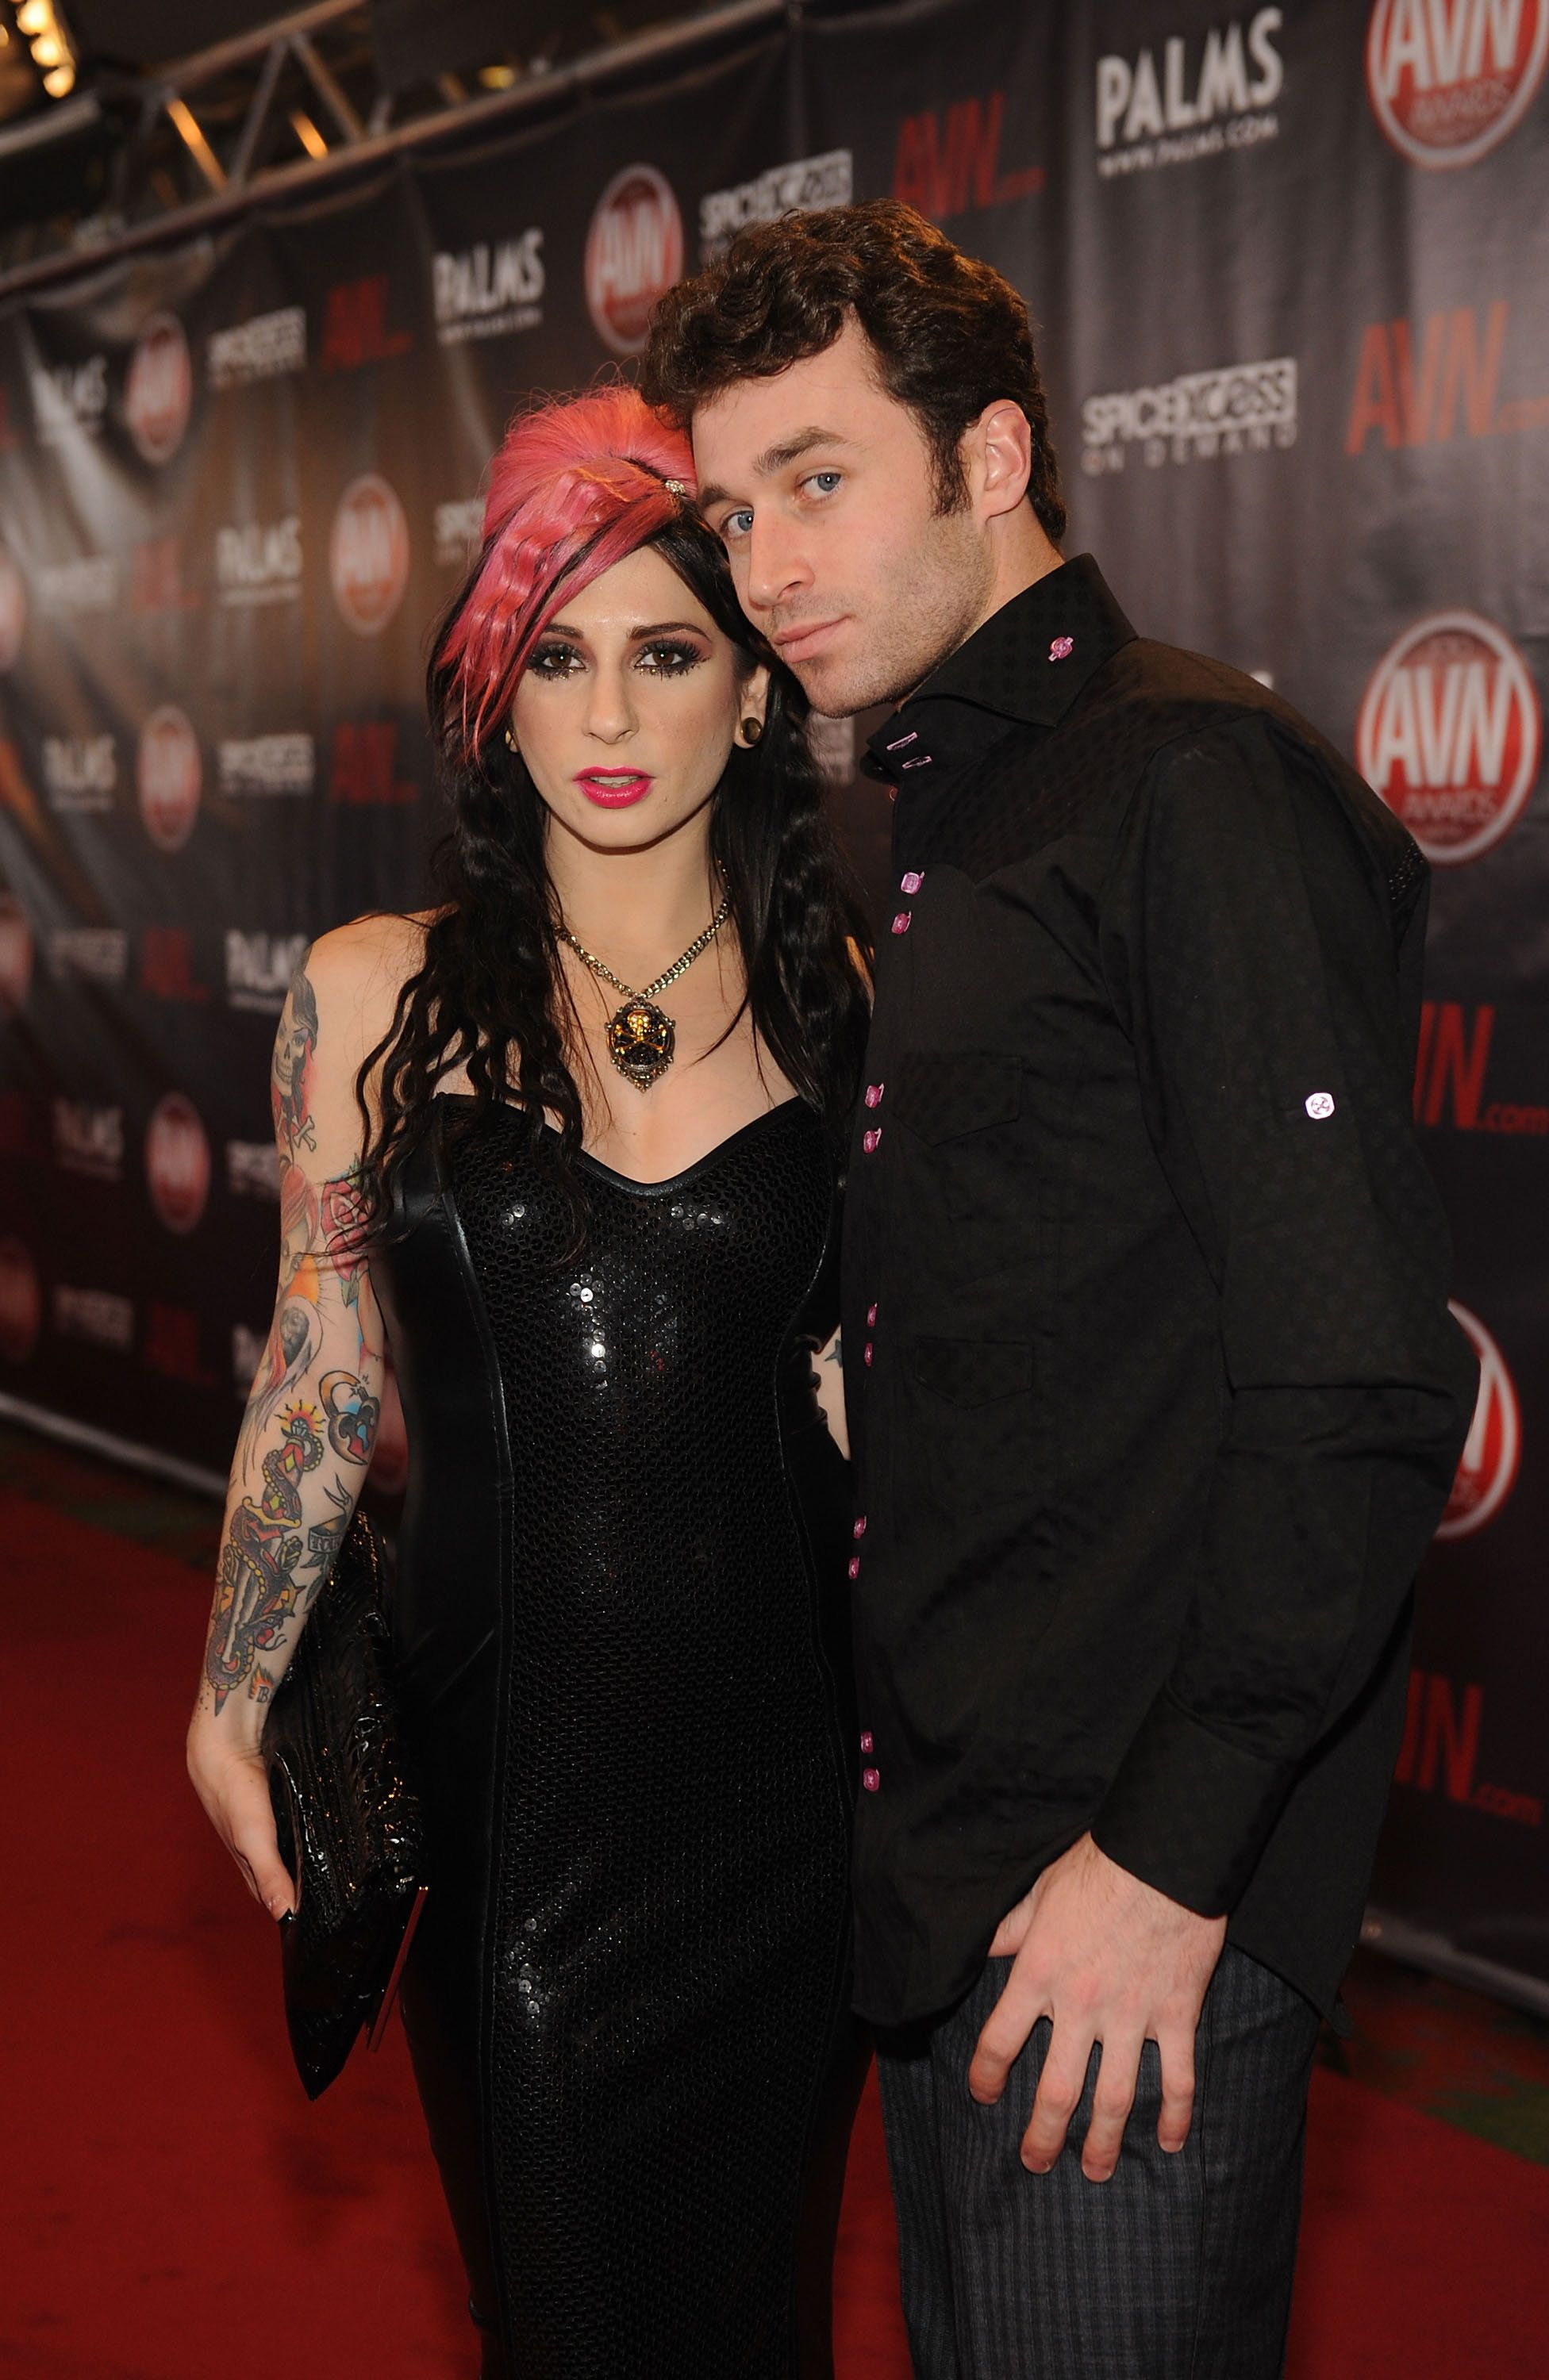 Joanna Angel and James Deen arrives at the 2010 AVN Awards at the Pearl at The Palms Casino Resort on January 9, 2010 in Las Vegas, Nevada. (Photo by Denise Truscello/WireImage)